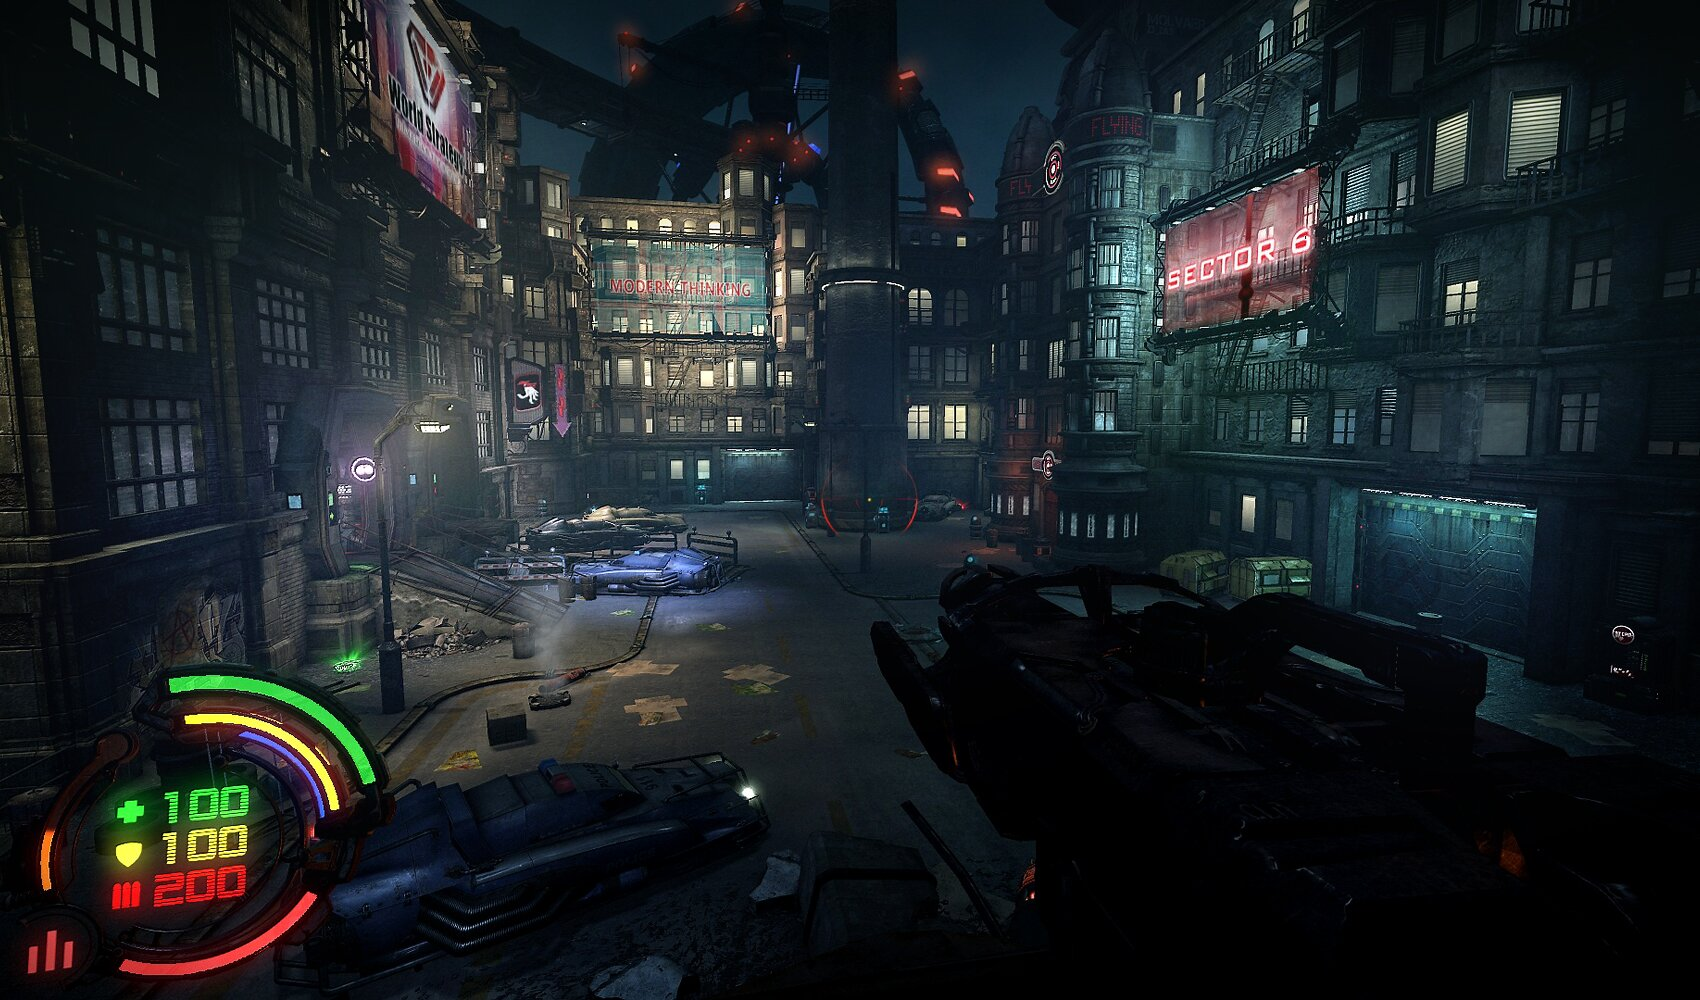 Hard Reset The Cyberpunk Fps From Flying Wild Hog